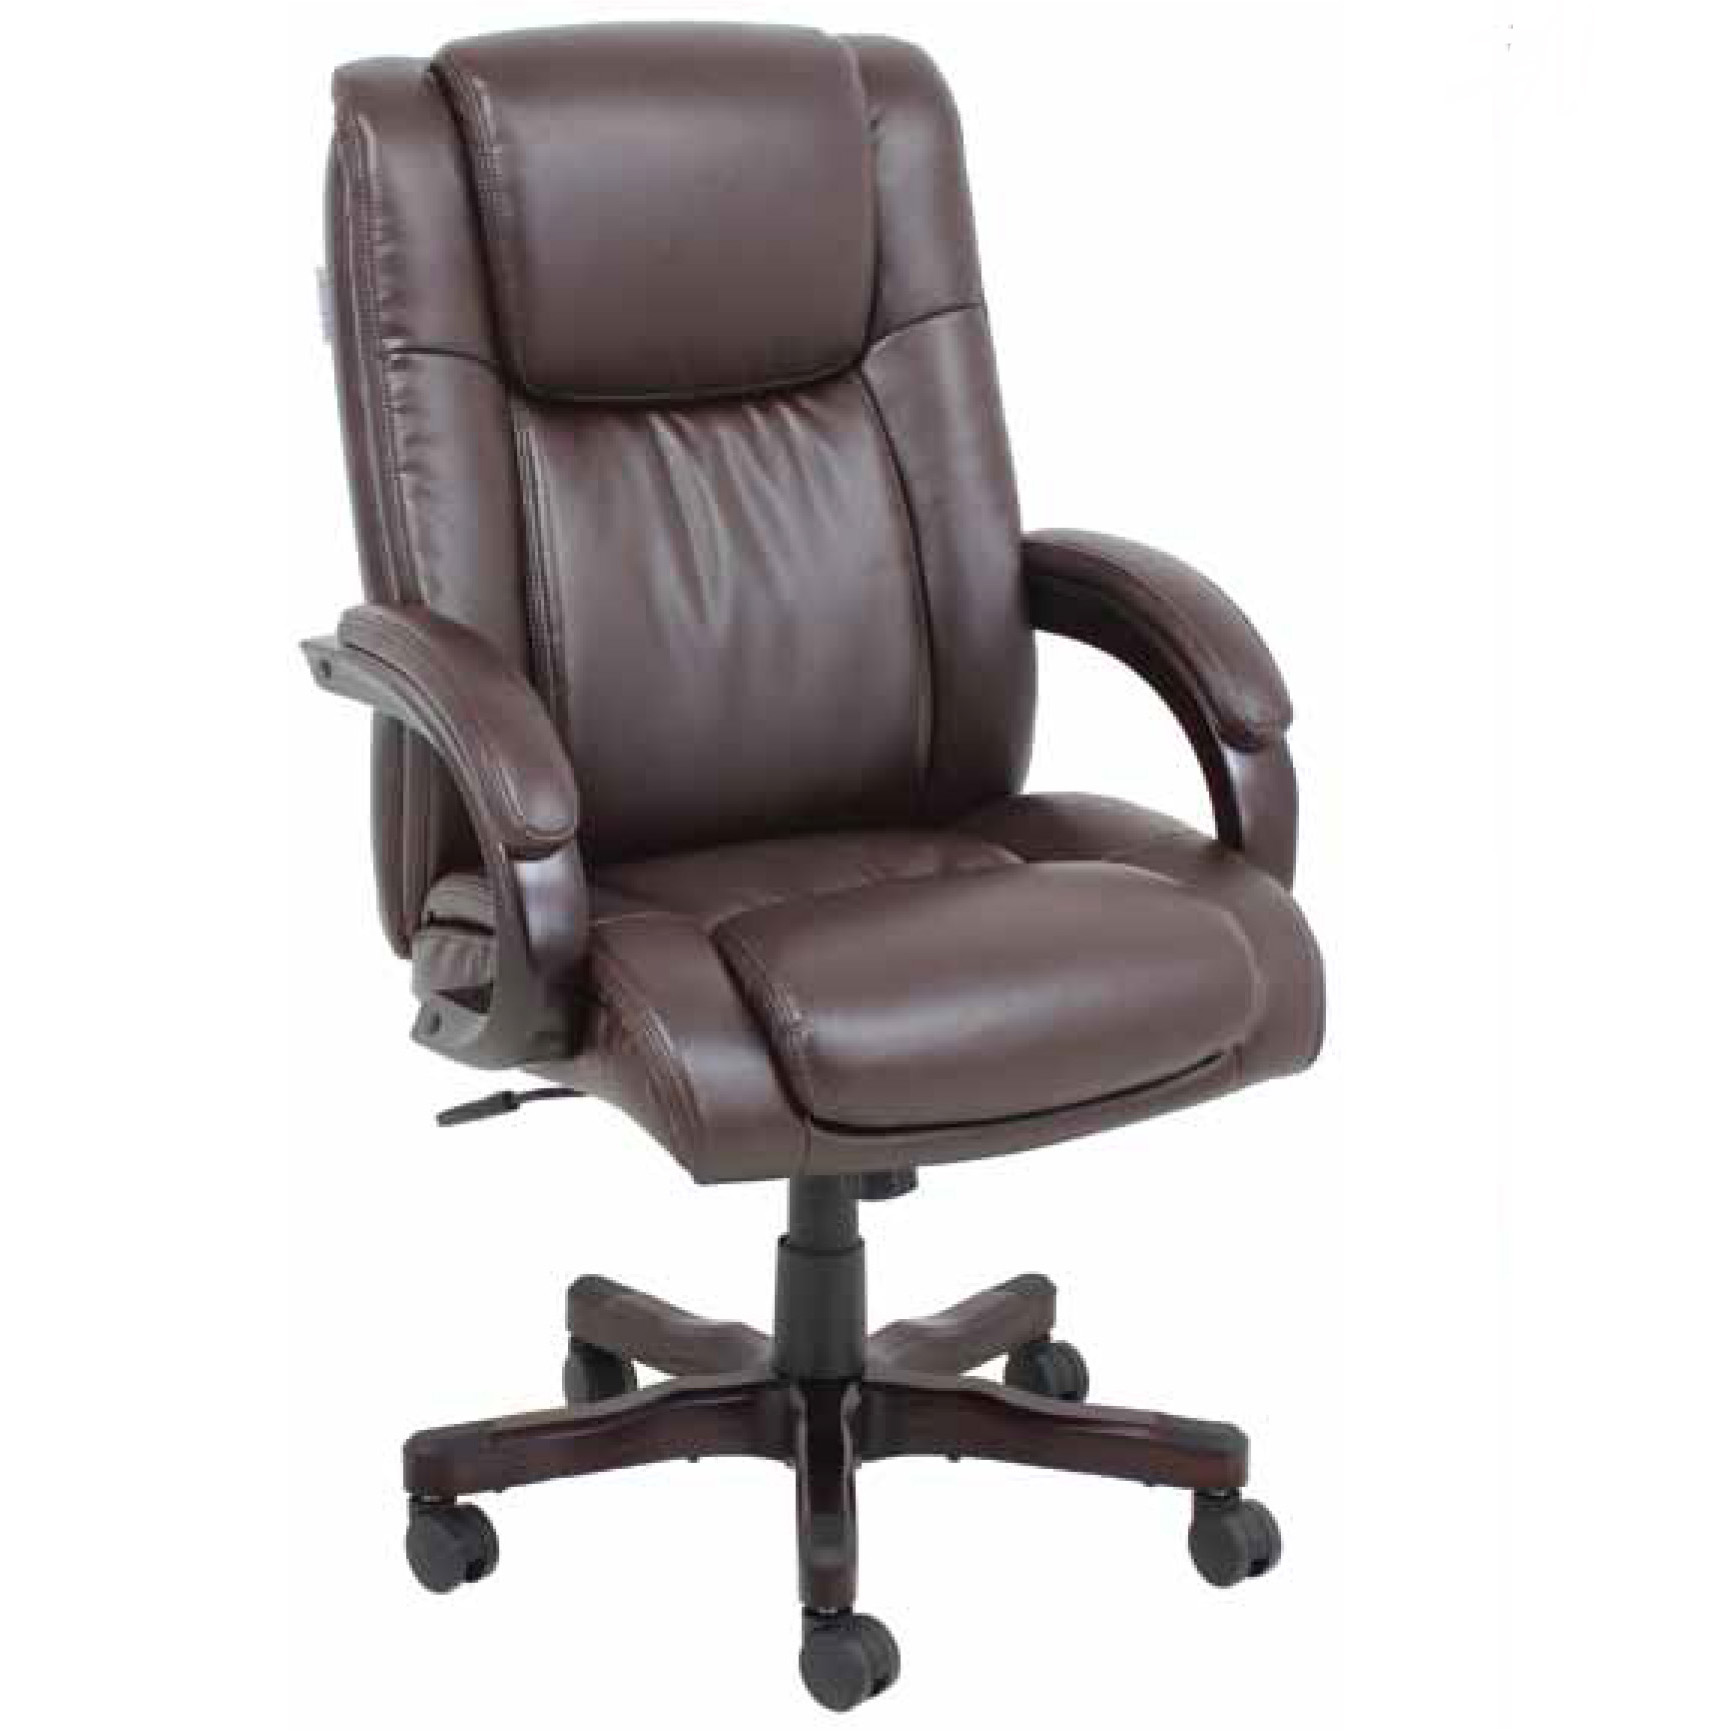 Barcalounger Titan II Home Office Desk Chair Recliner